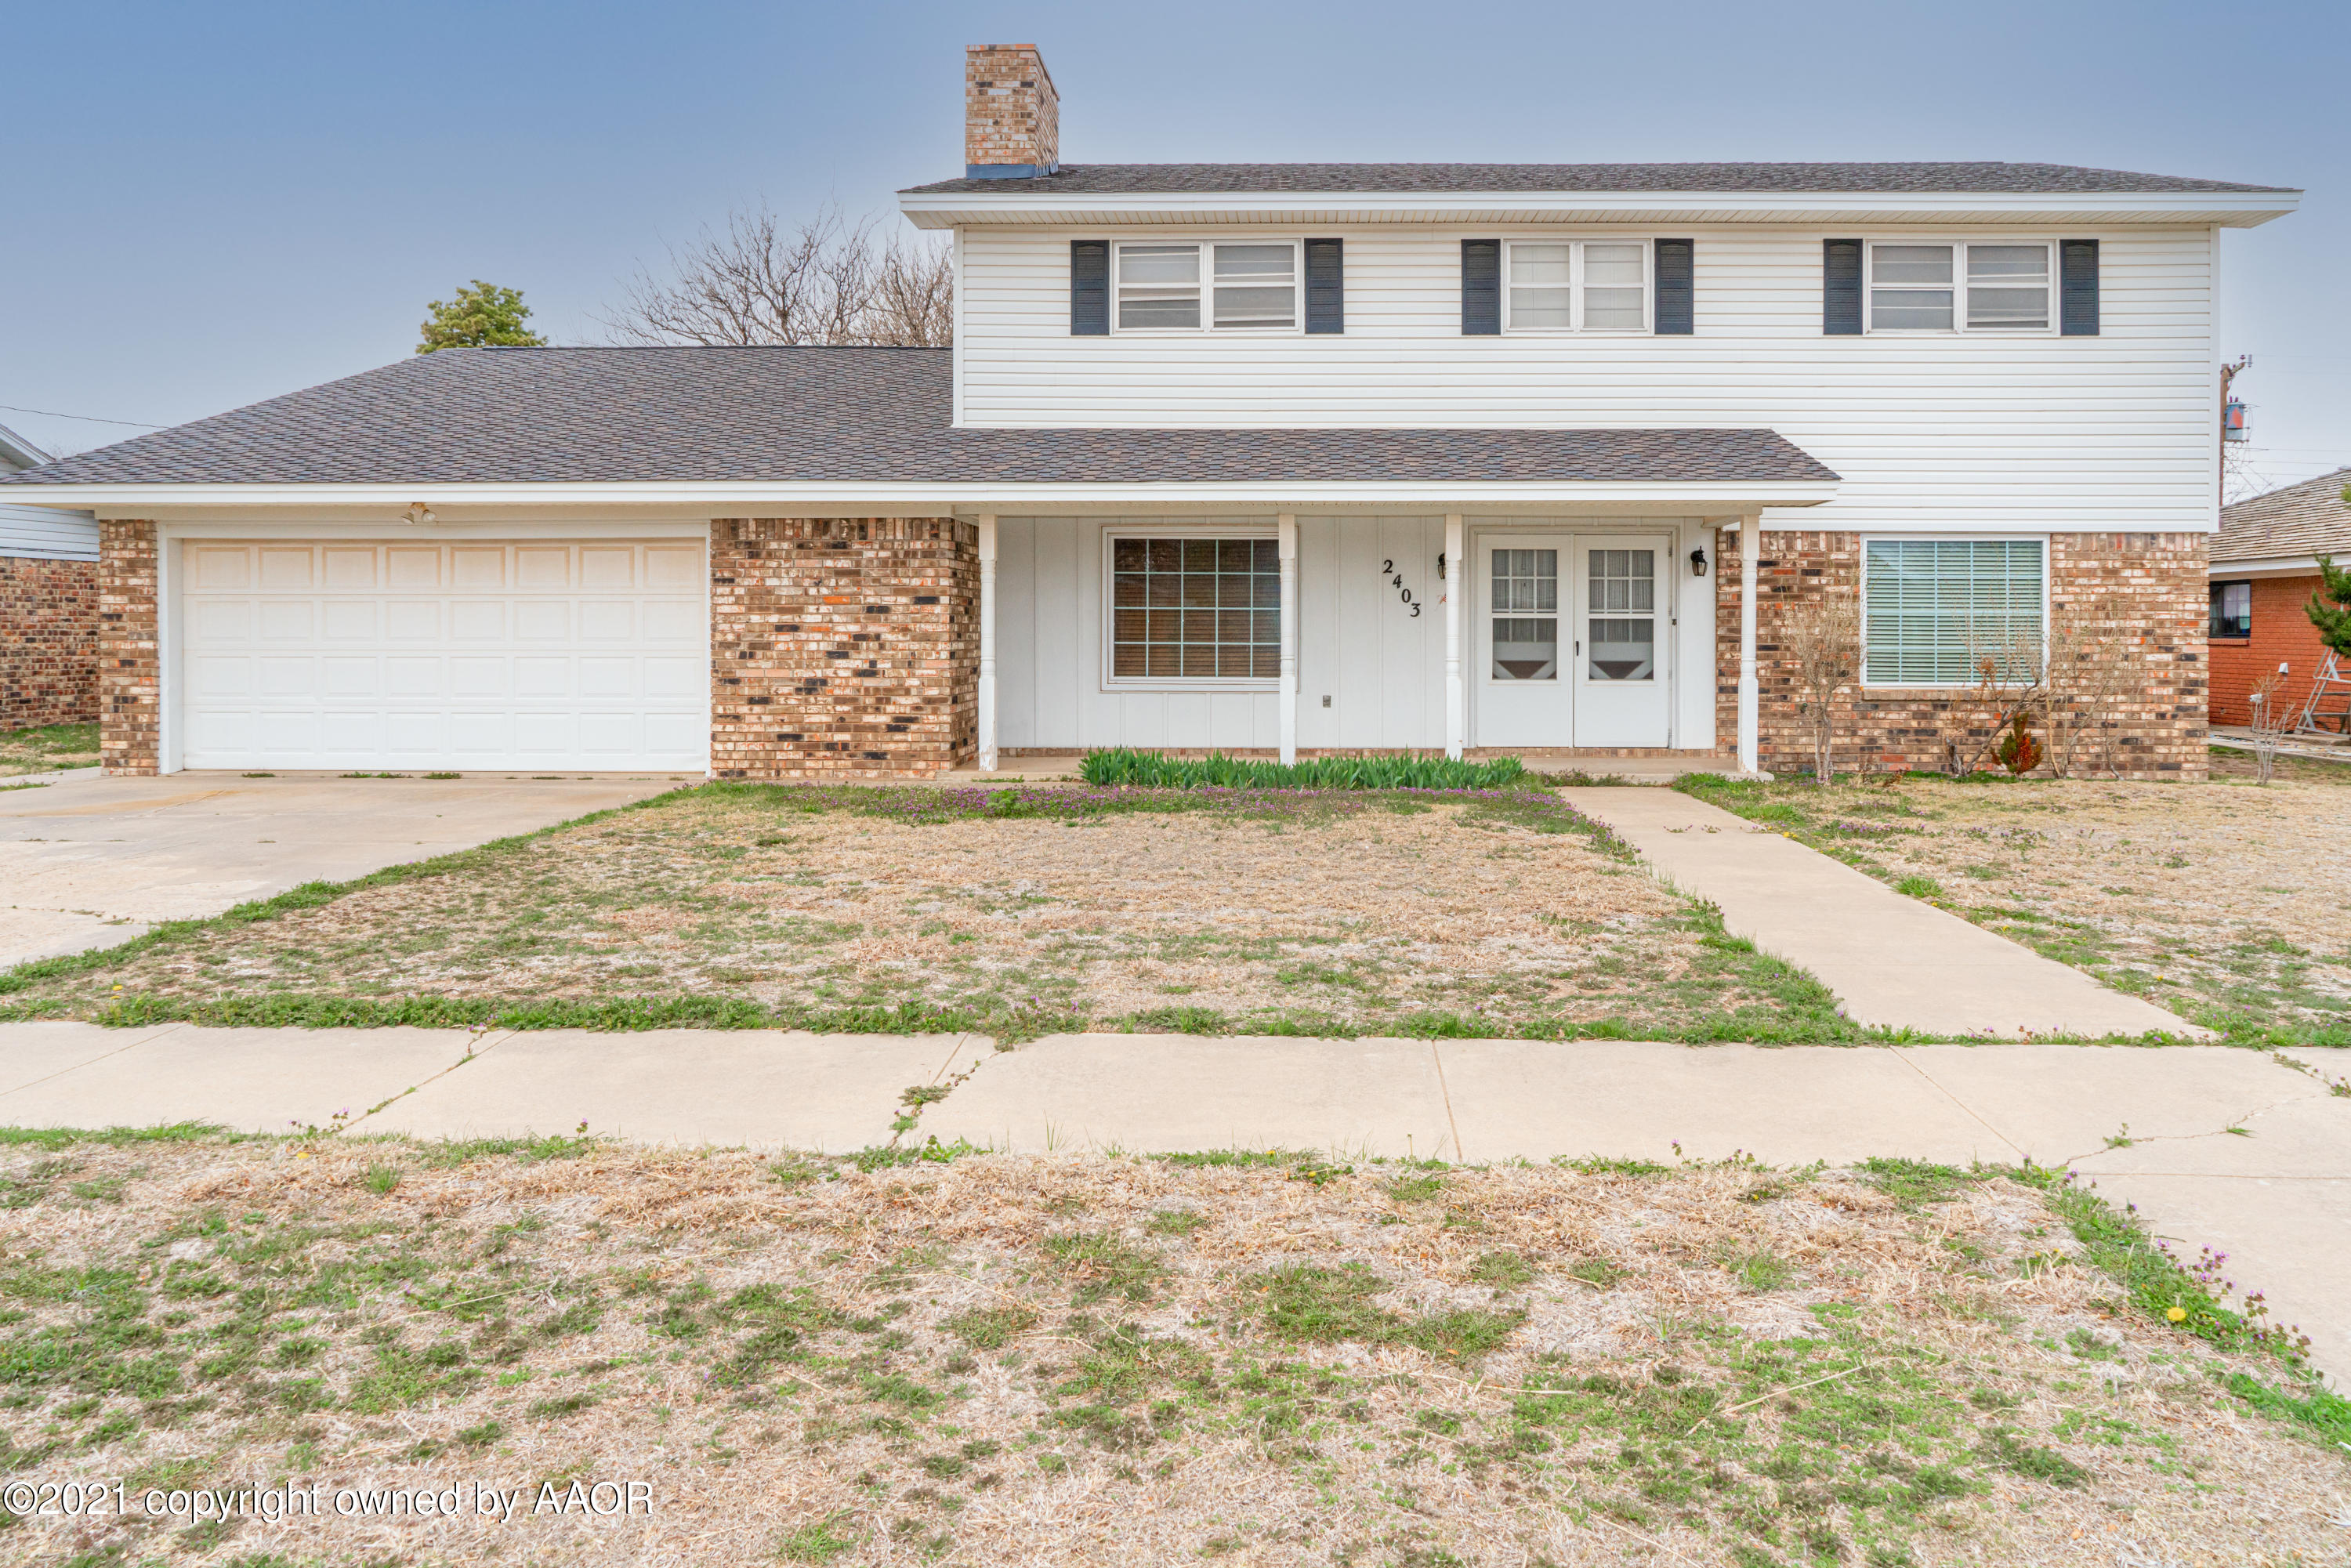 Photo of 2403 15TH AVE, Canyon, TX 79015